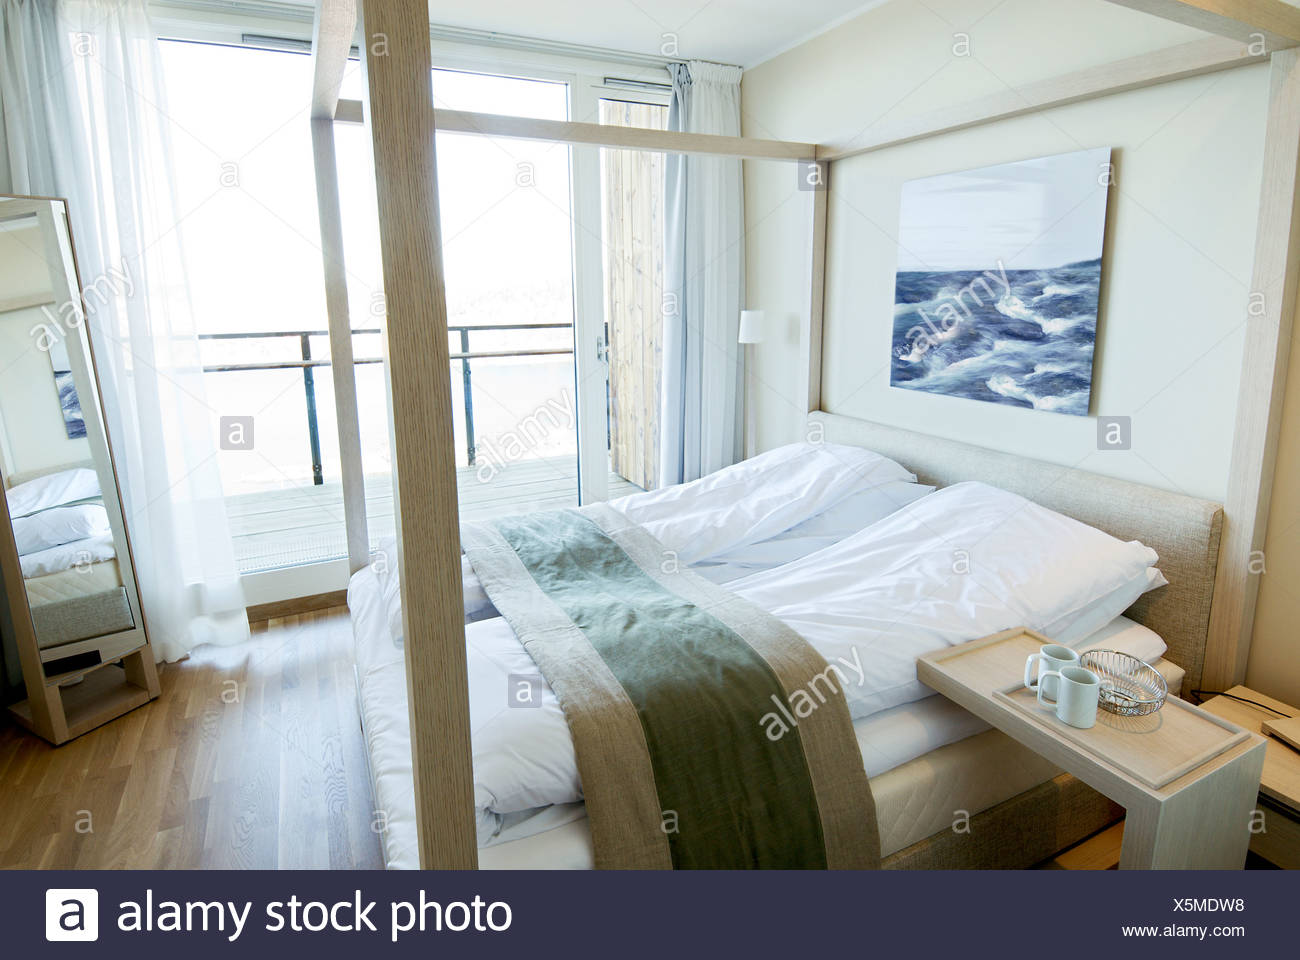 View of a four-post bed on wooden floor by huge window in a bedroom at home - Stock Image